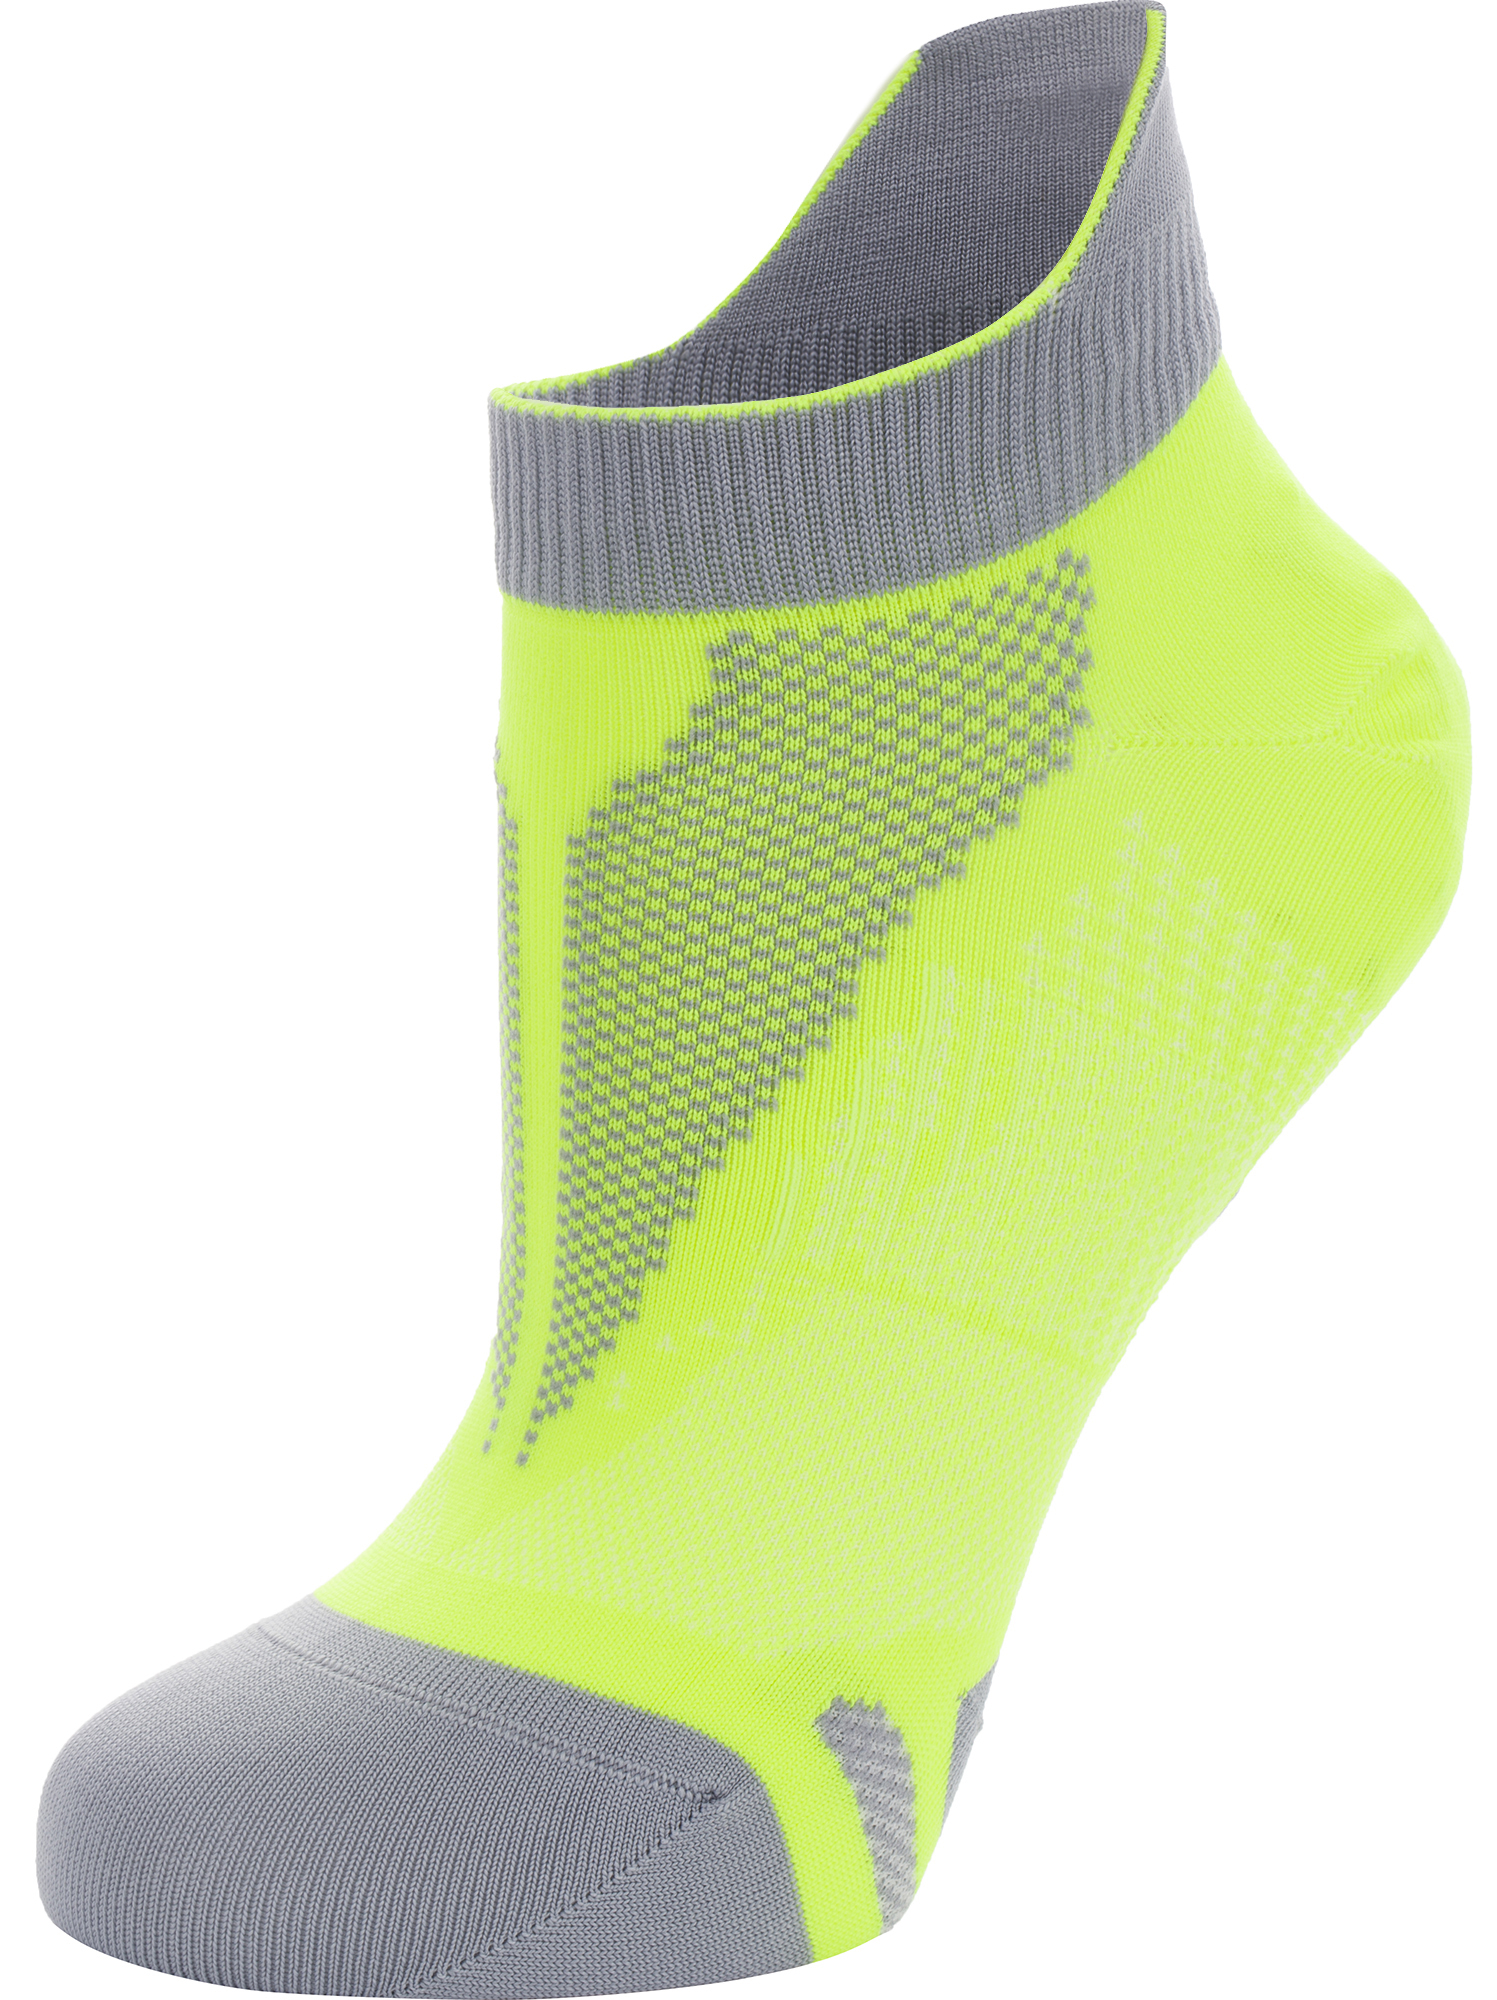 Nike Носки Nike Elite Lightweight No-Show, 1 пара чулок д щитков nike guard lock elite sleeve su12 se0173 011 s чёрный